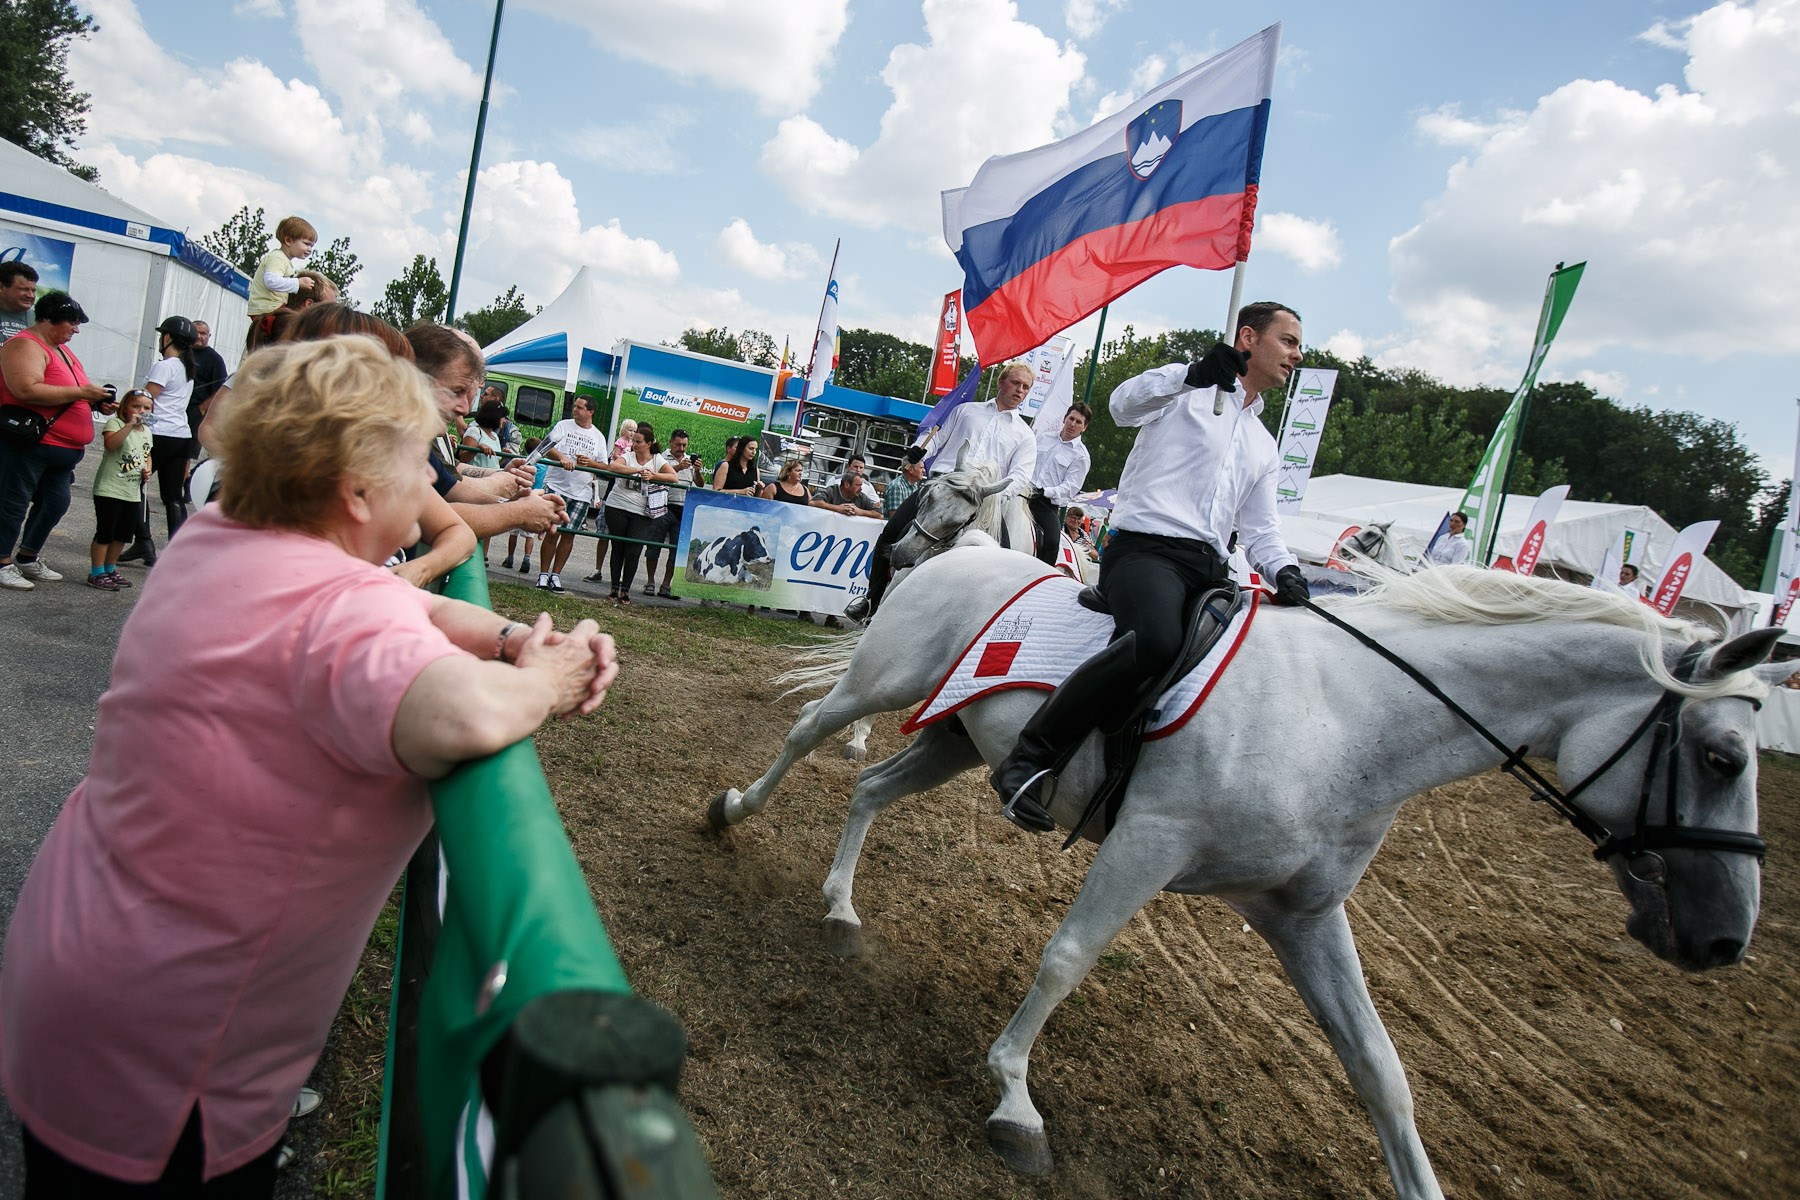 People watch the lipizzaner horse show at the 53rd agricultural fair Agra in Gornja Radgona, Slovenia, Aug. 22, 2015.